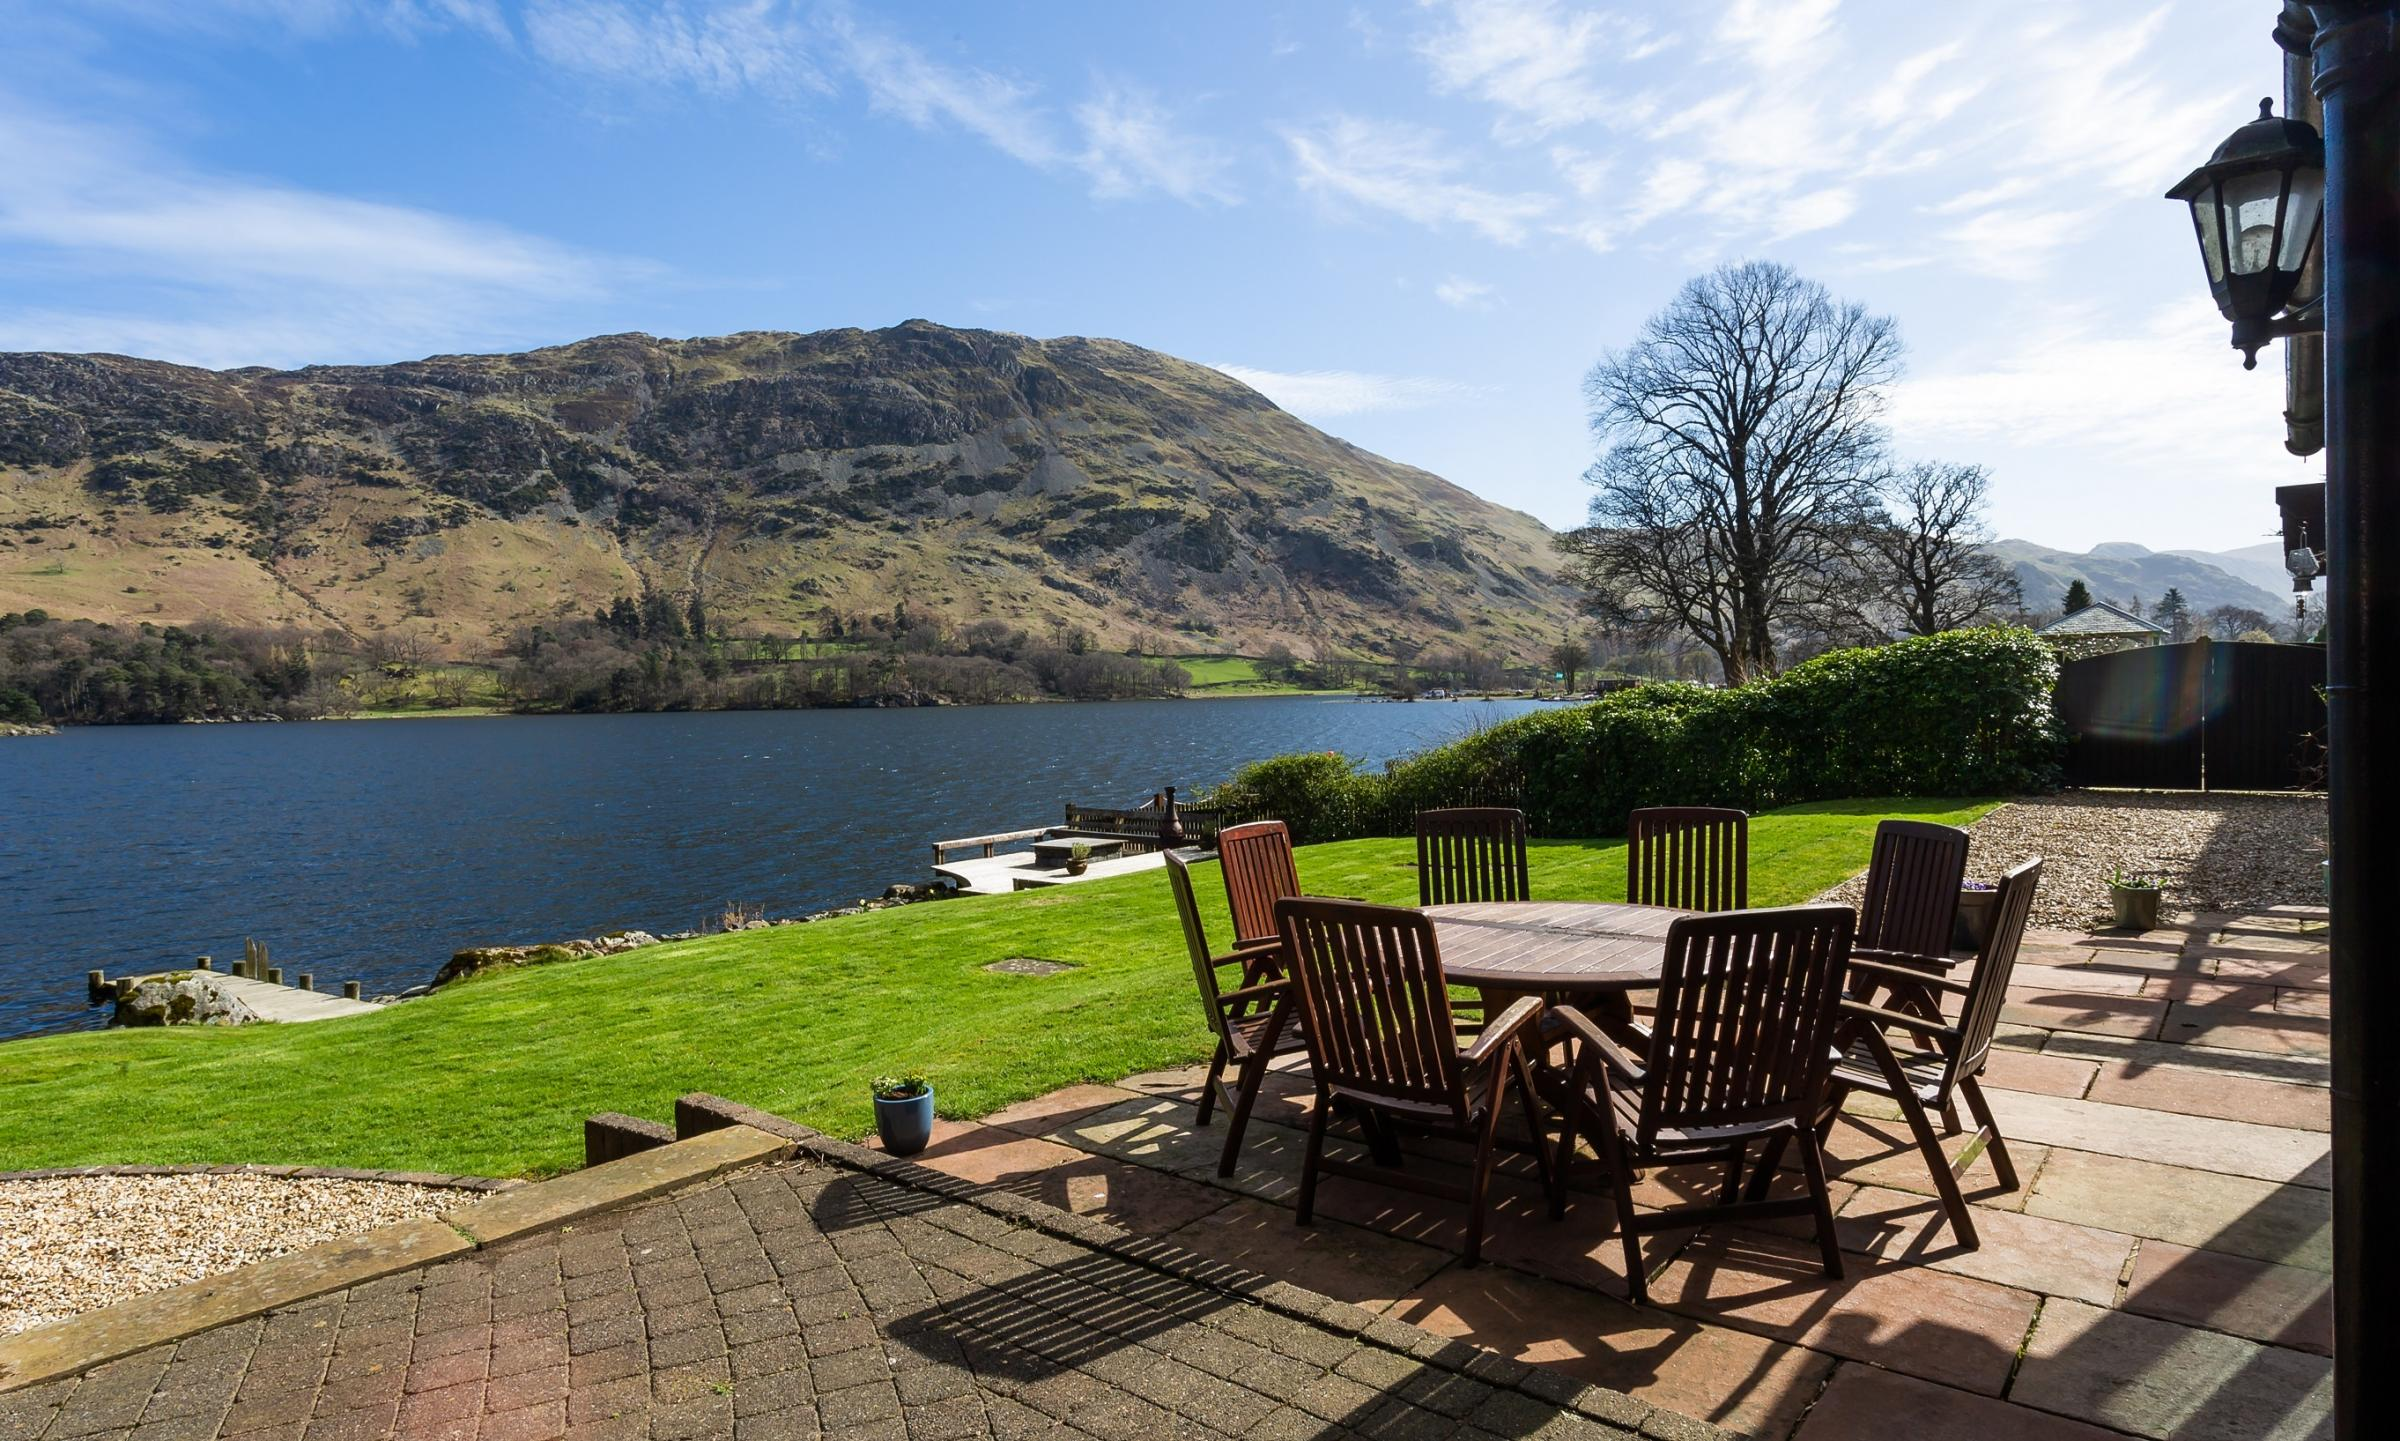 Heart of the Lakes shortlisted for British Travel Awards